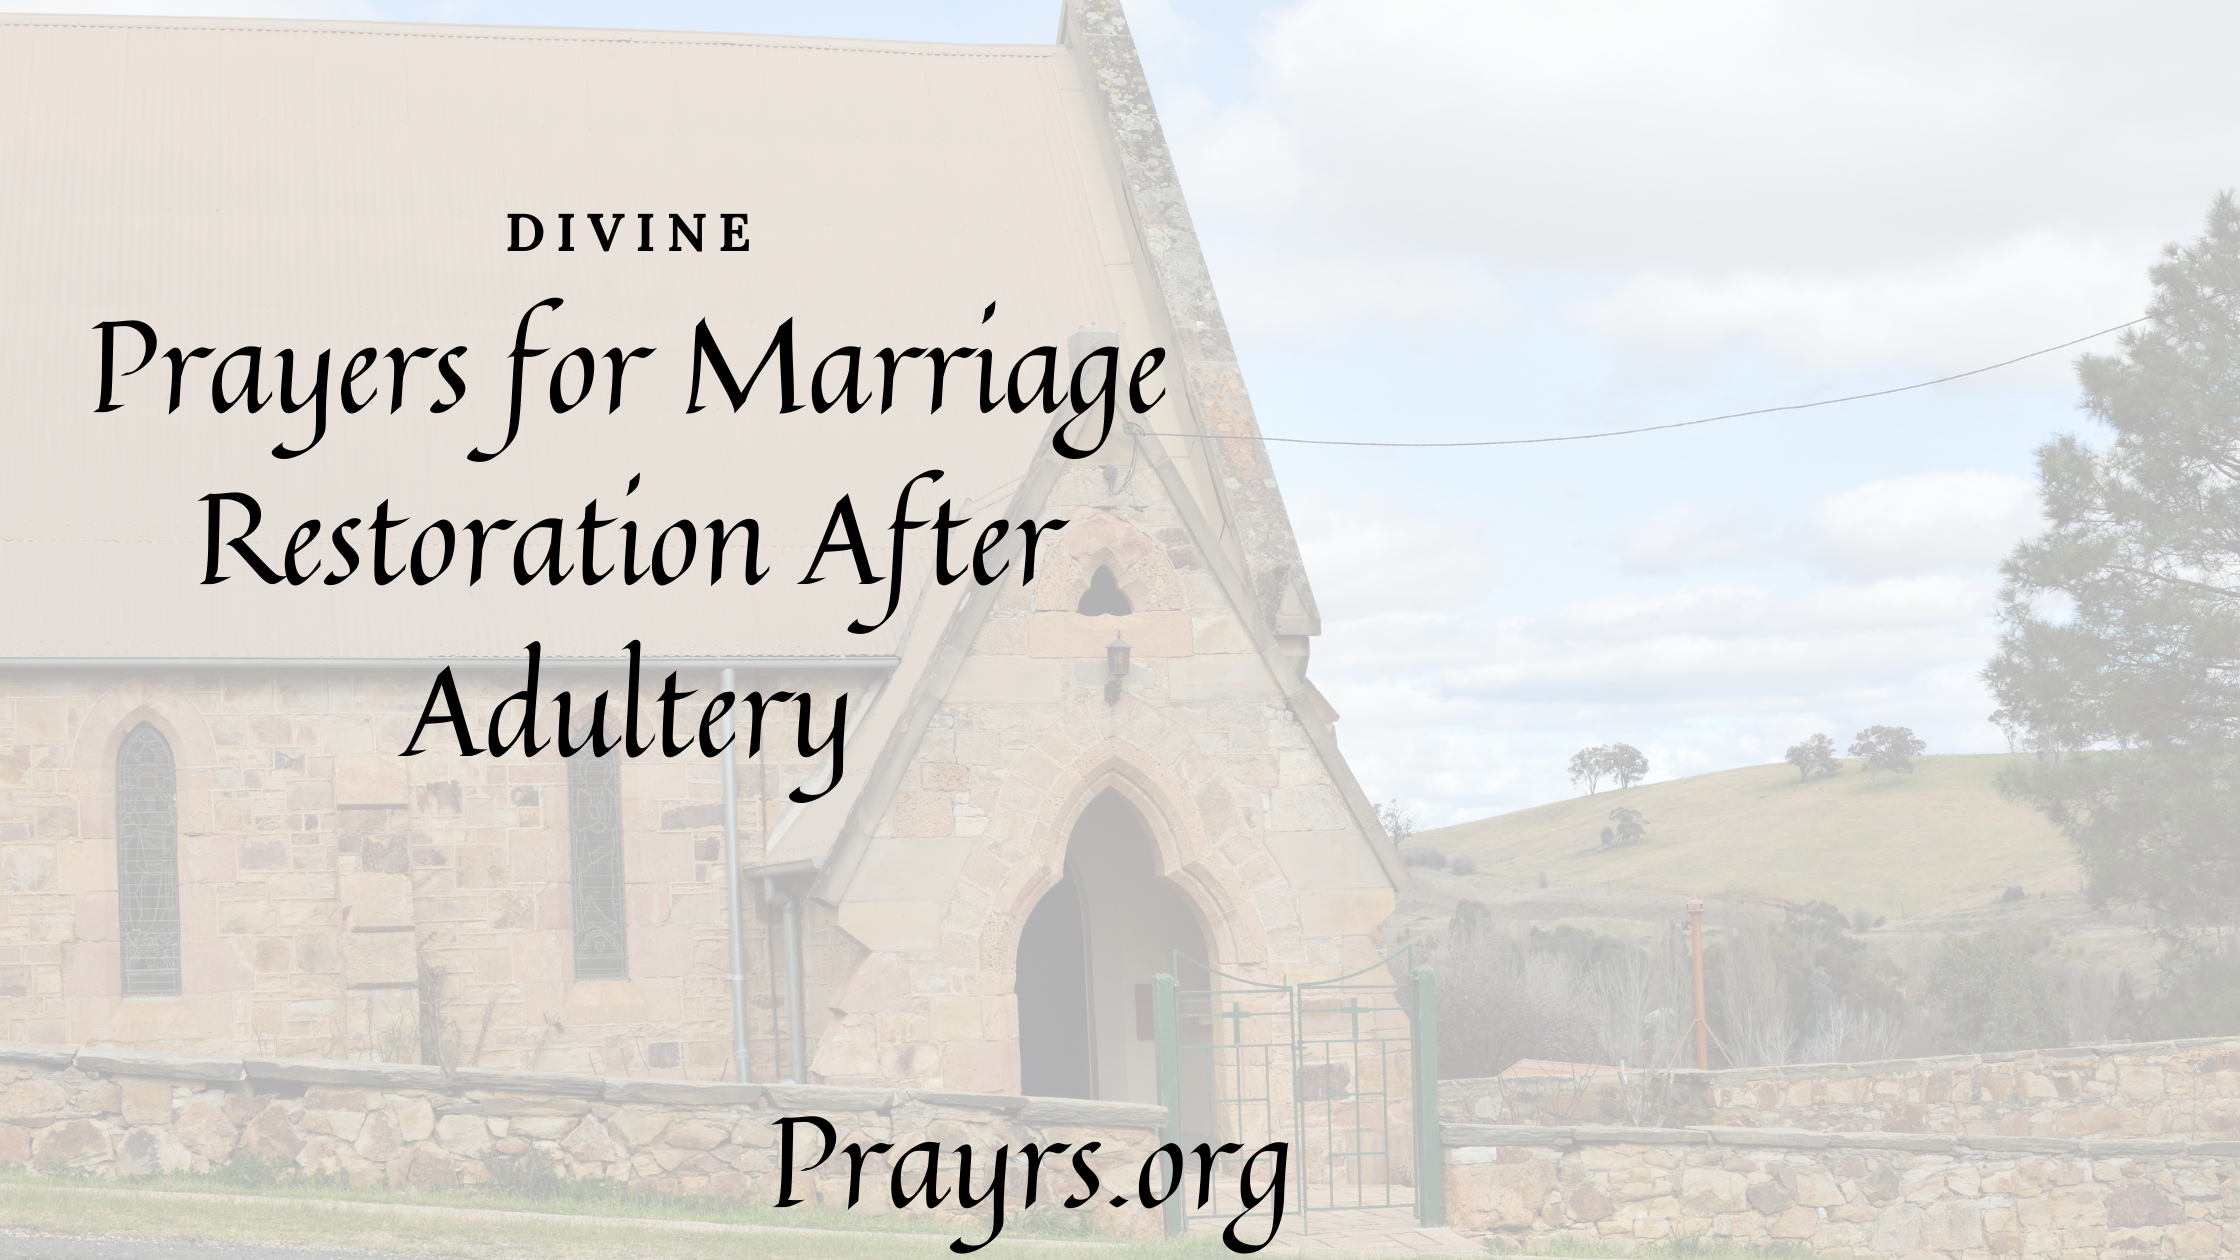 Prayers for Marriage Restoration After Adultery